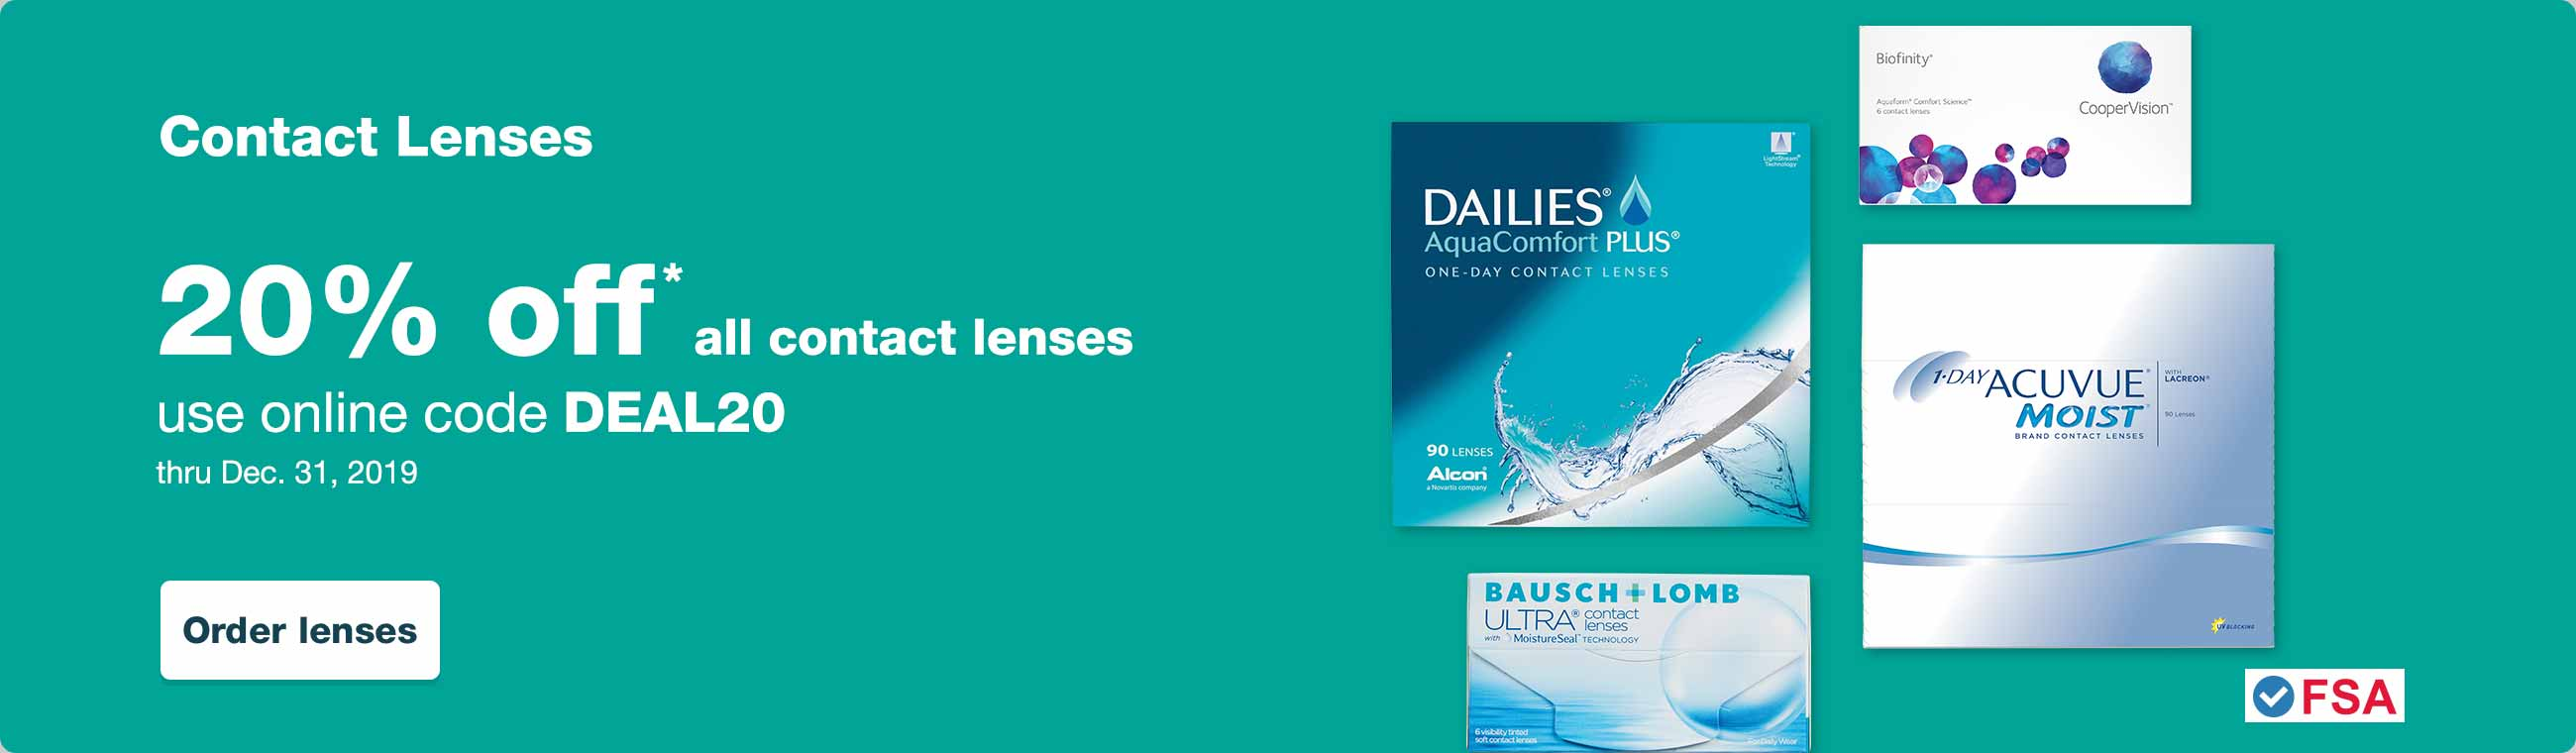 Contact Lenses. 20% off* all contact lenses. Use online code DEAL20 thru Dec. 31, 2019. FSA Approved Contact Lenses. Order lenses.